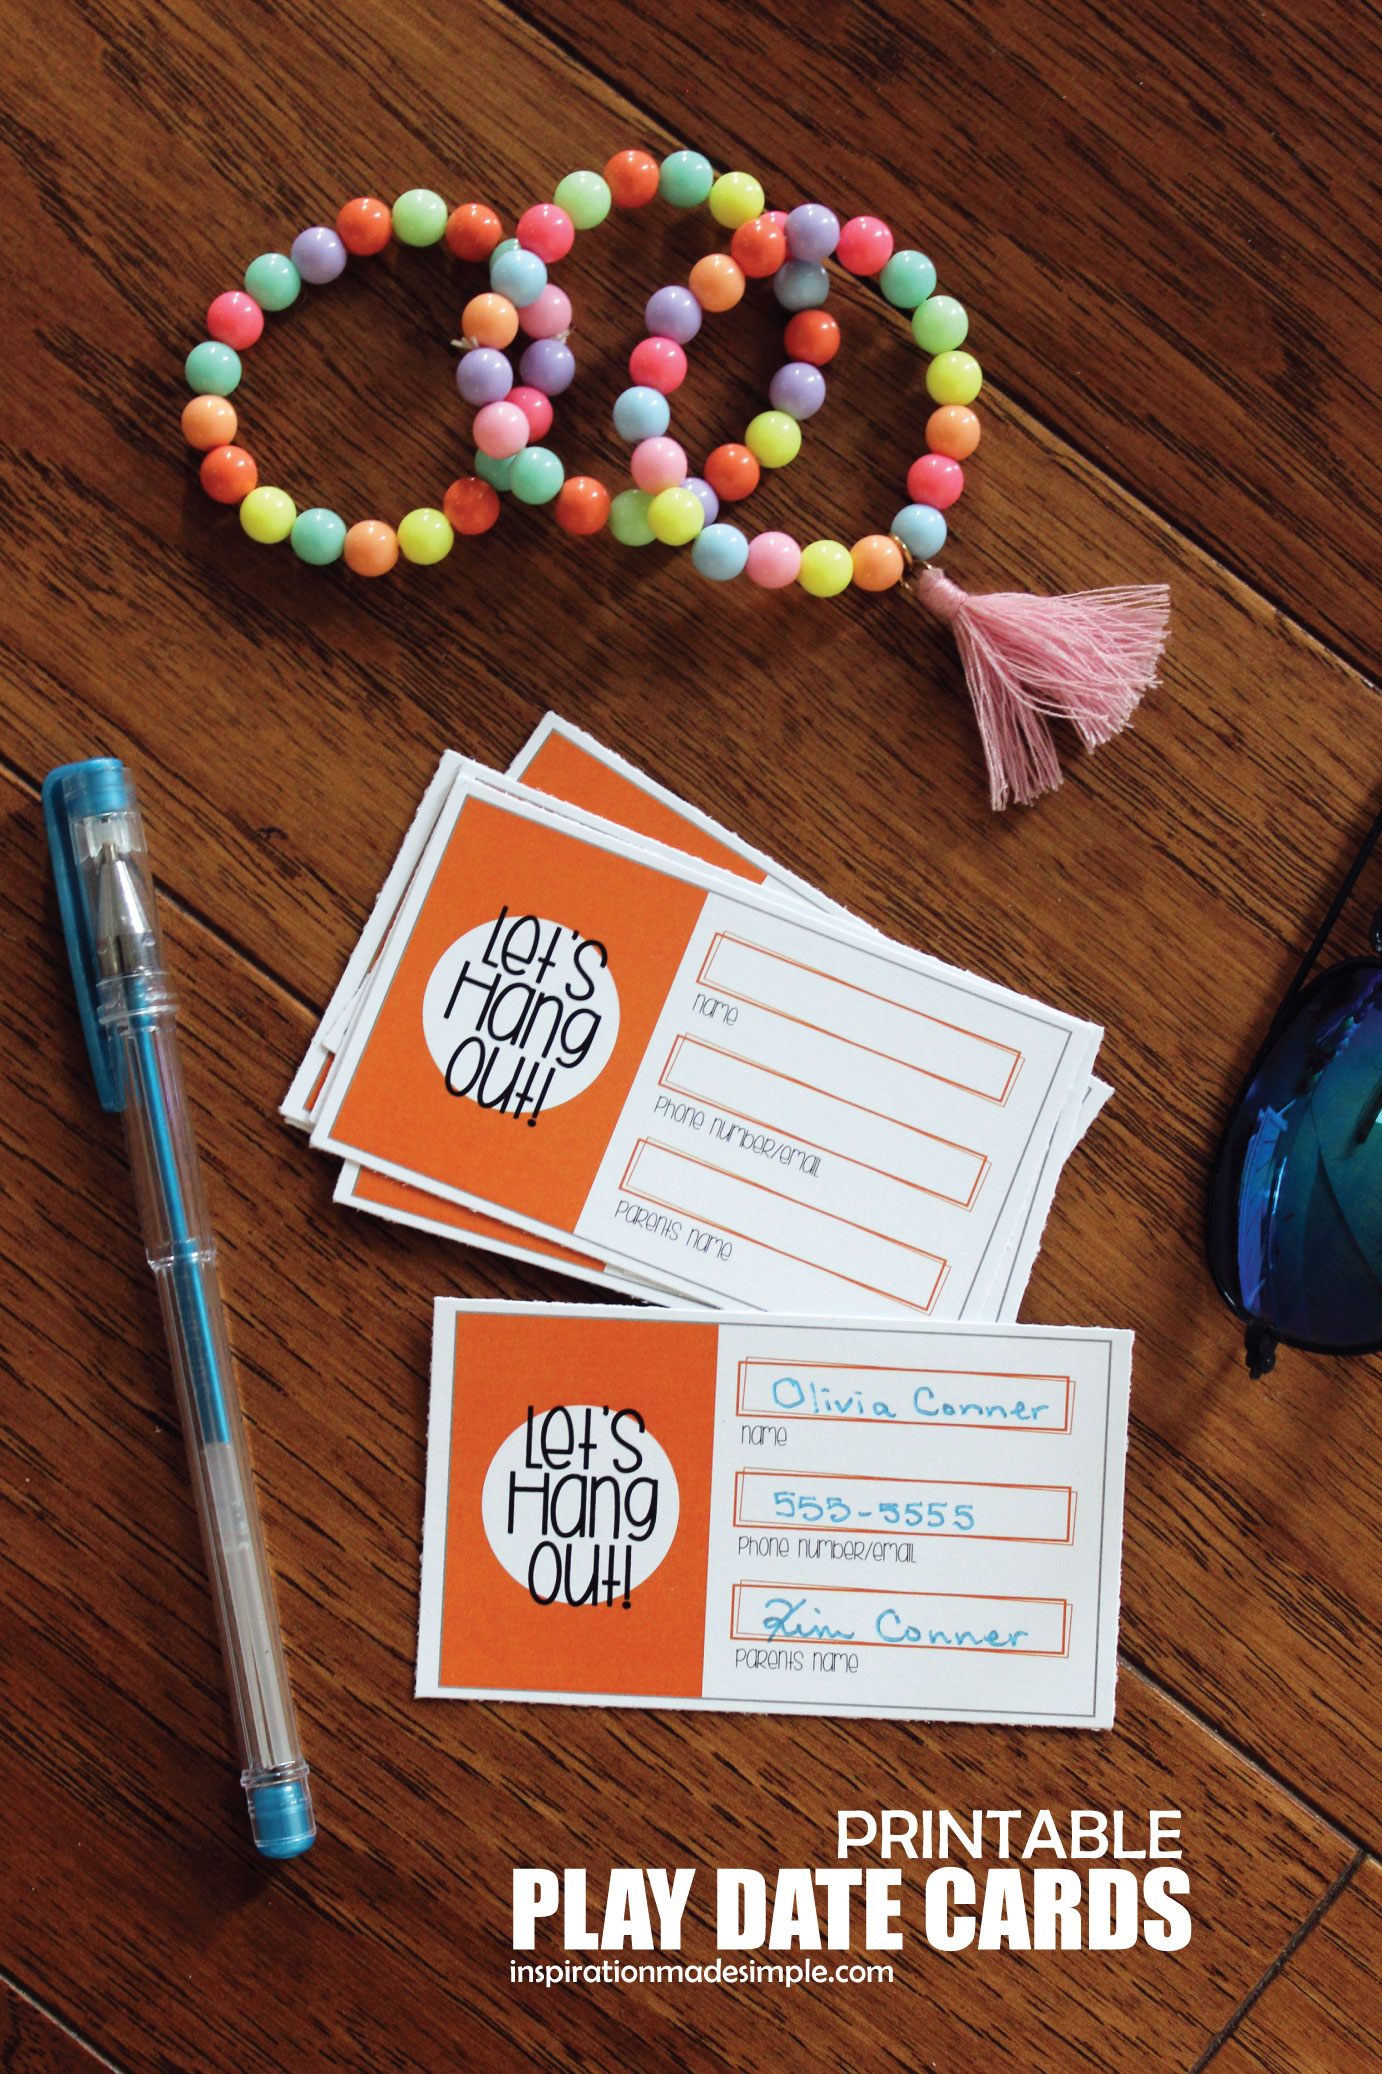 Printable play date cards keeps your kids social lives hopping!